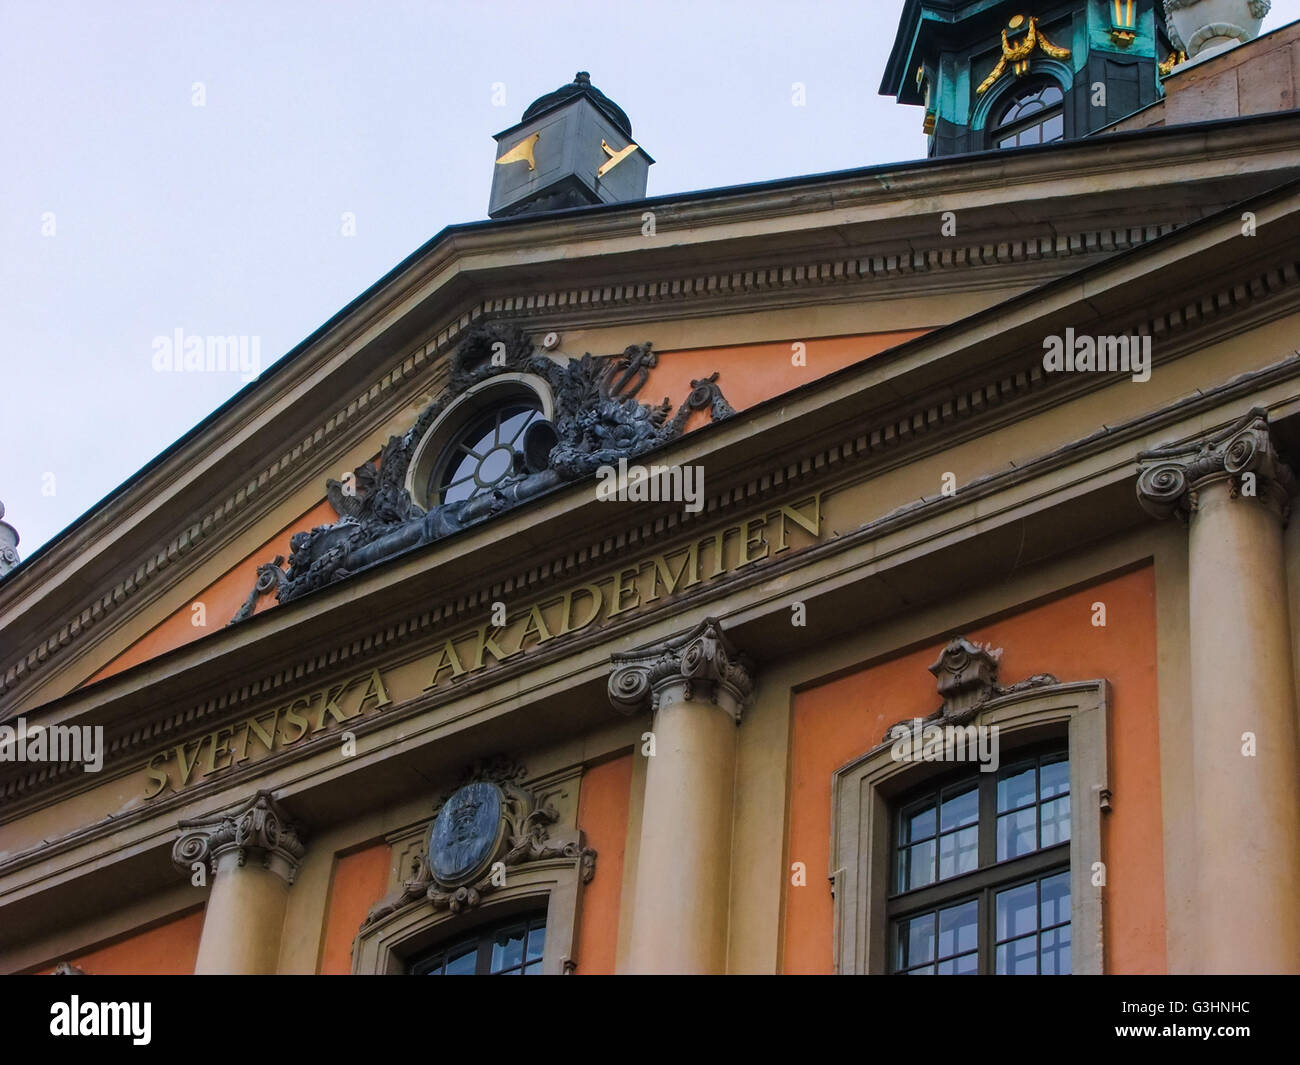 Svenska Akademien, the cultural institution located at old town area of Stockholm, Sweden. - Stock Image